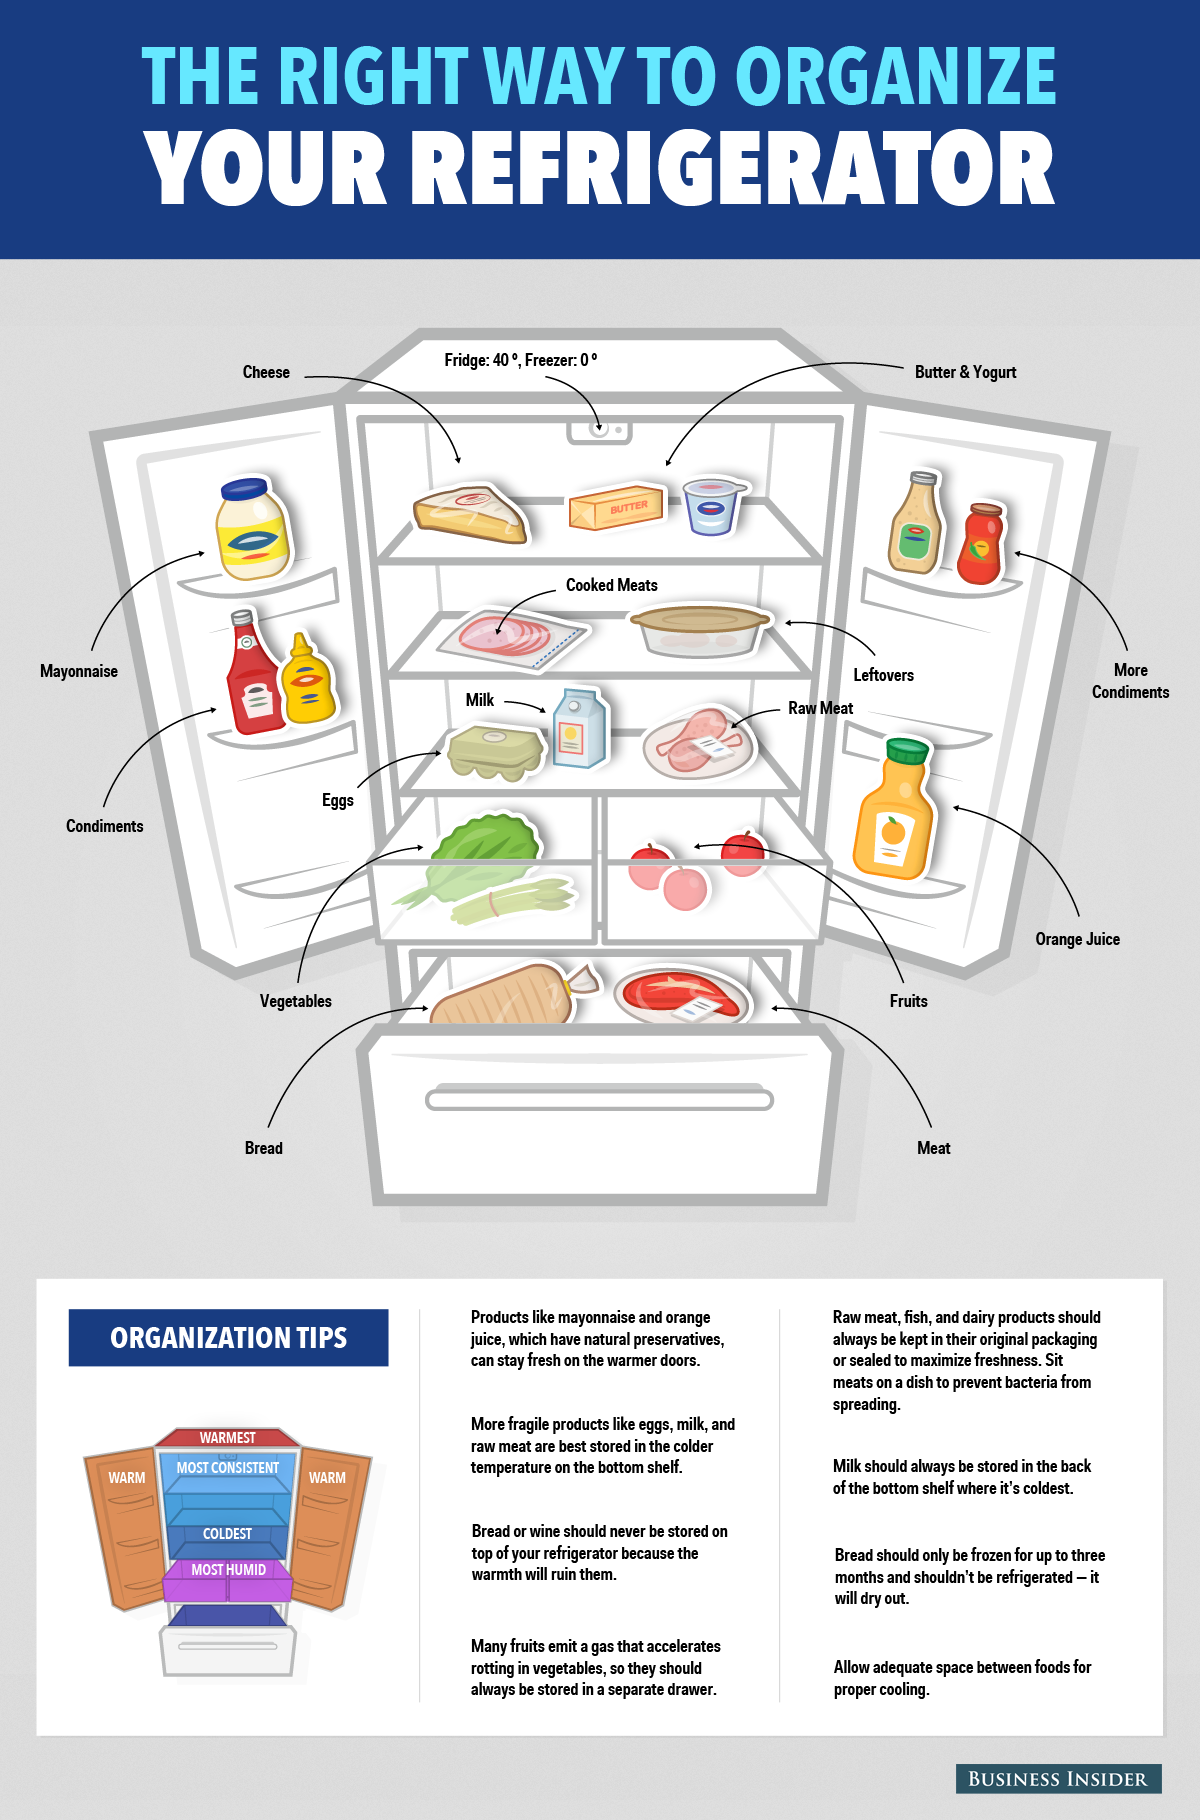 Here's The Right Way To Organize Your Refrigerator ...